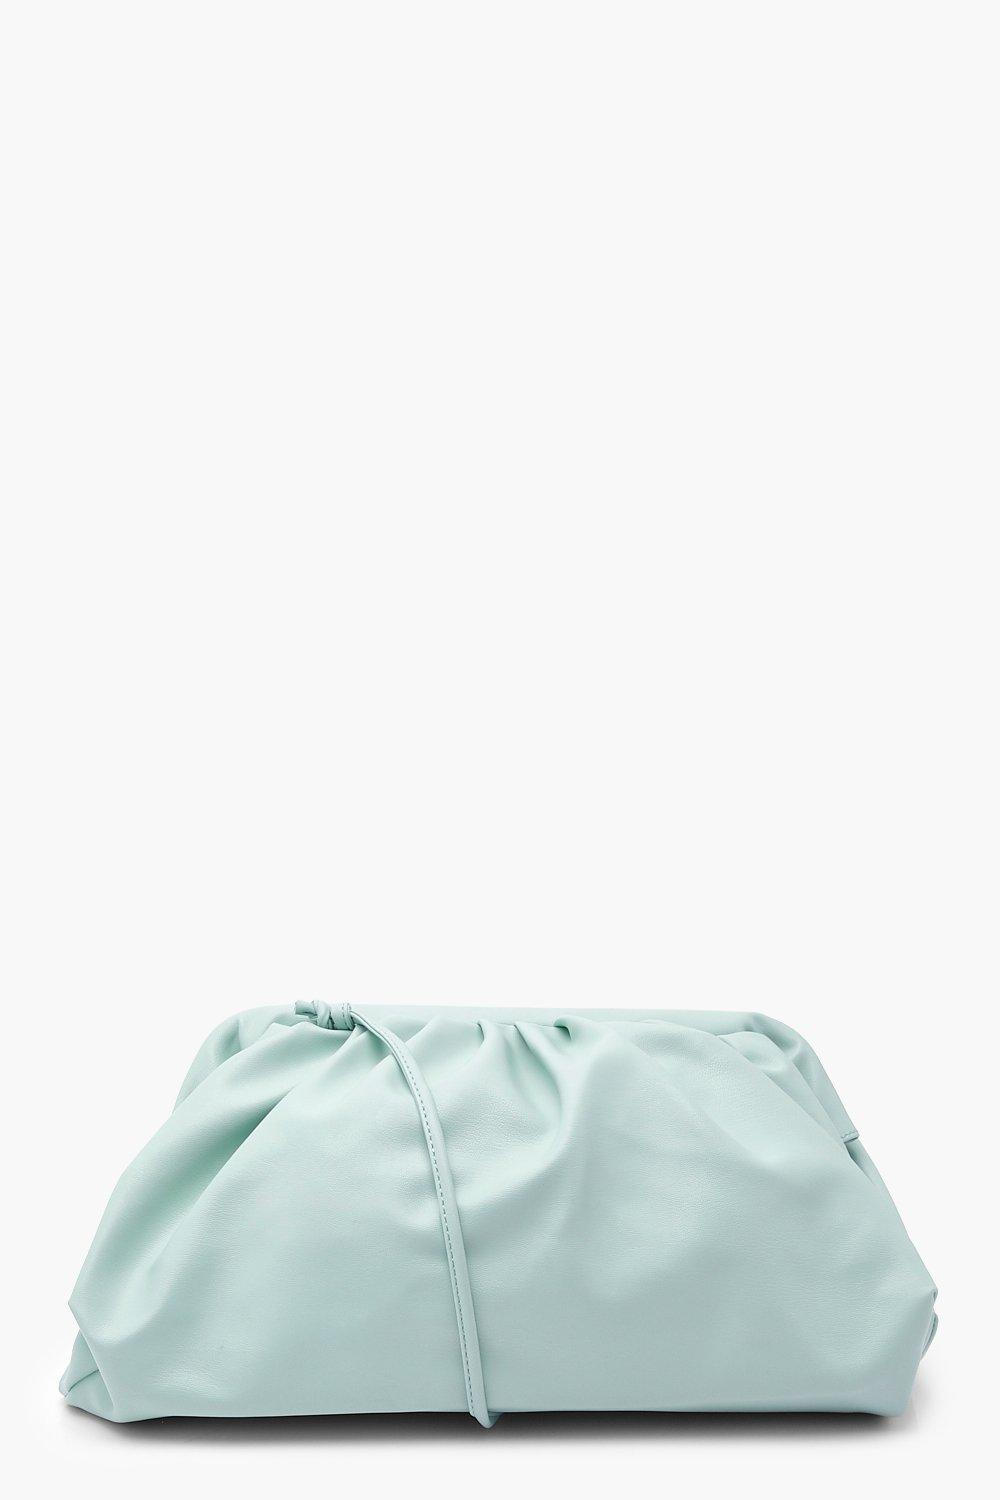 Bags Slouchy Oversized PU Clutch & Strap Bag